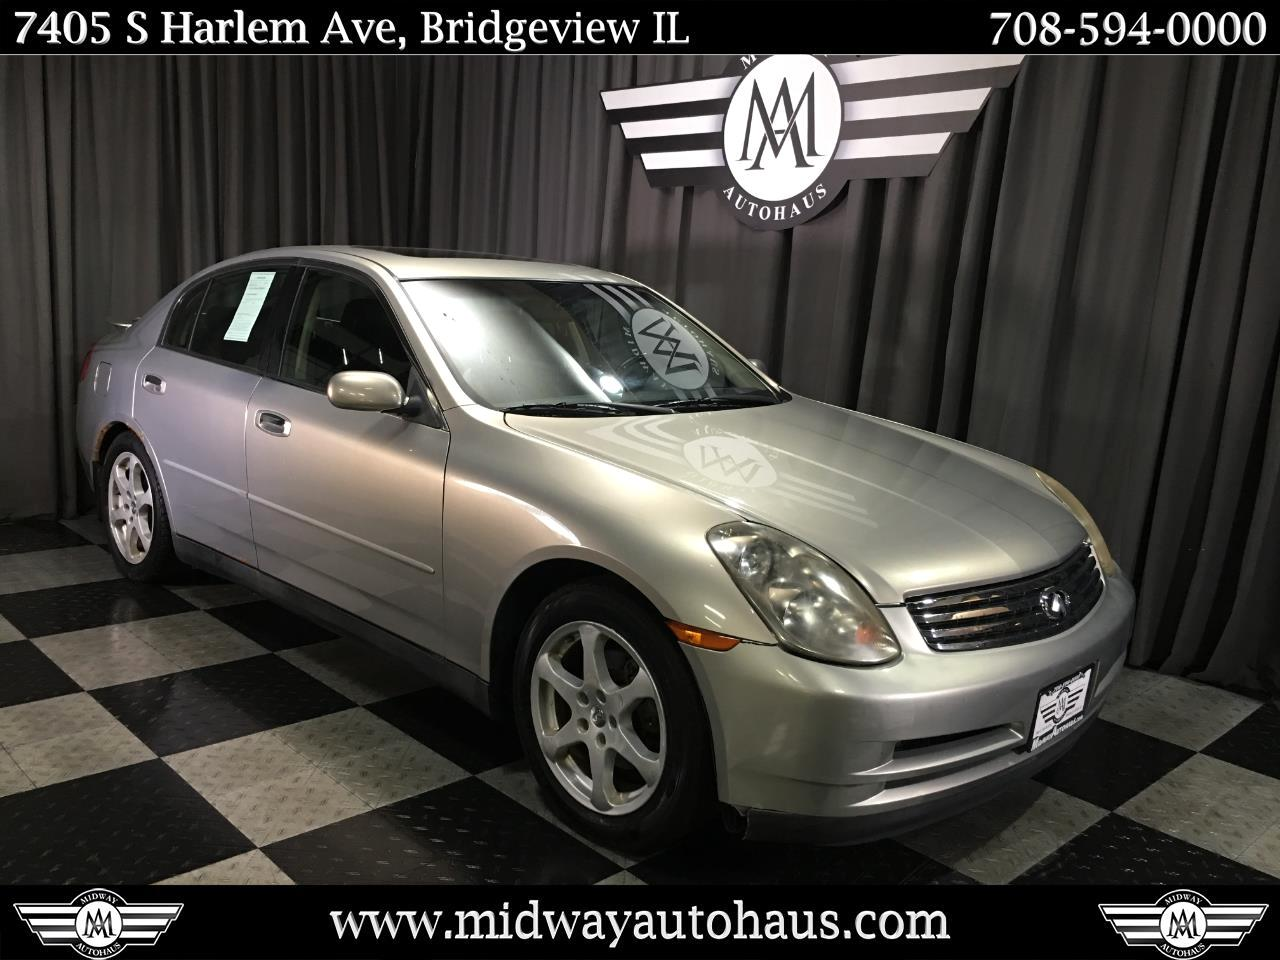 Pre-Owned 2004 INFINITI G35 Sedan 4dr Sdn Auto w/Leather